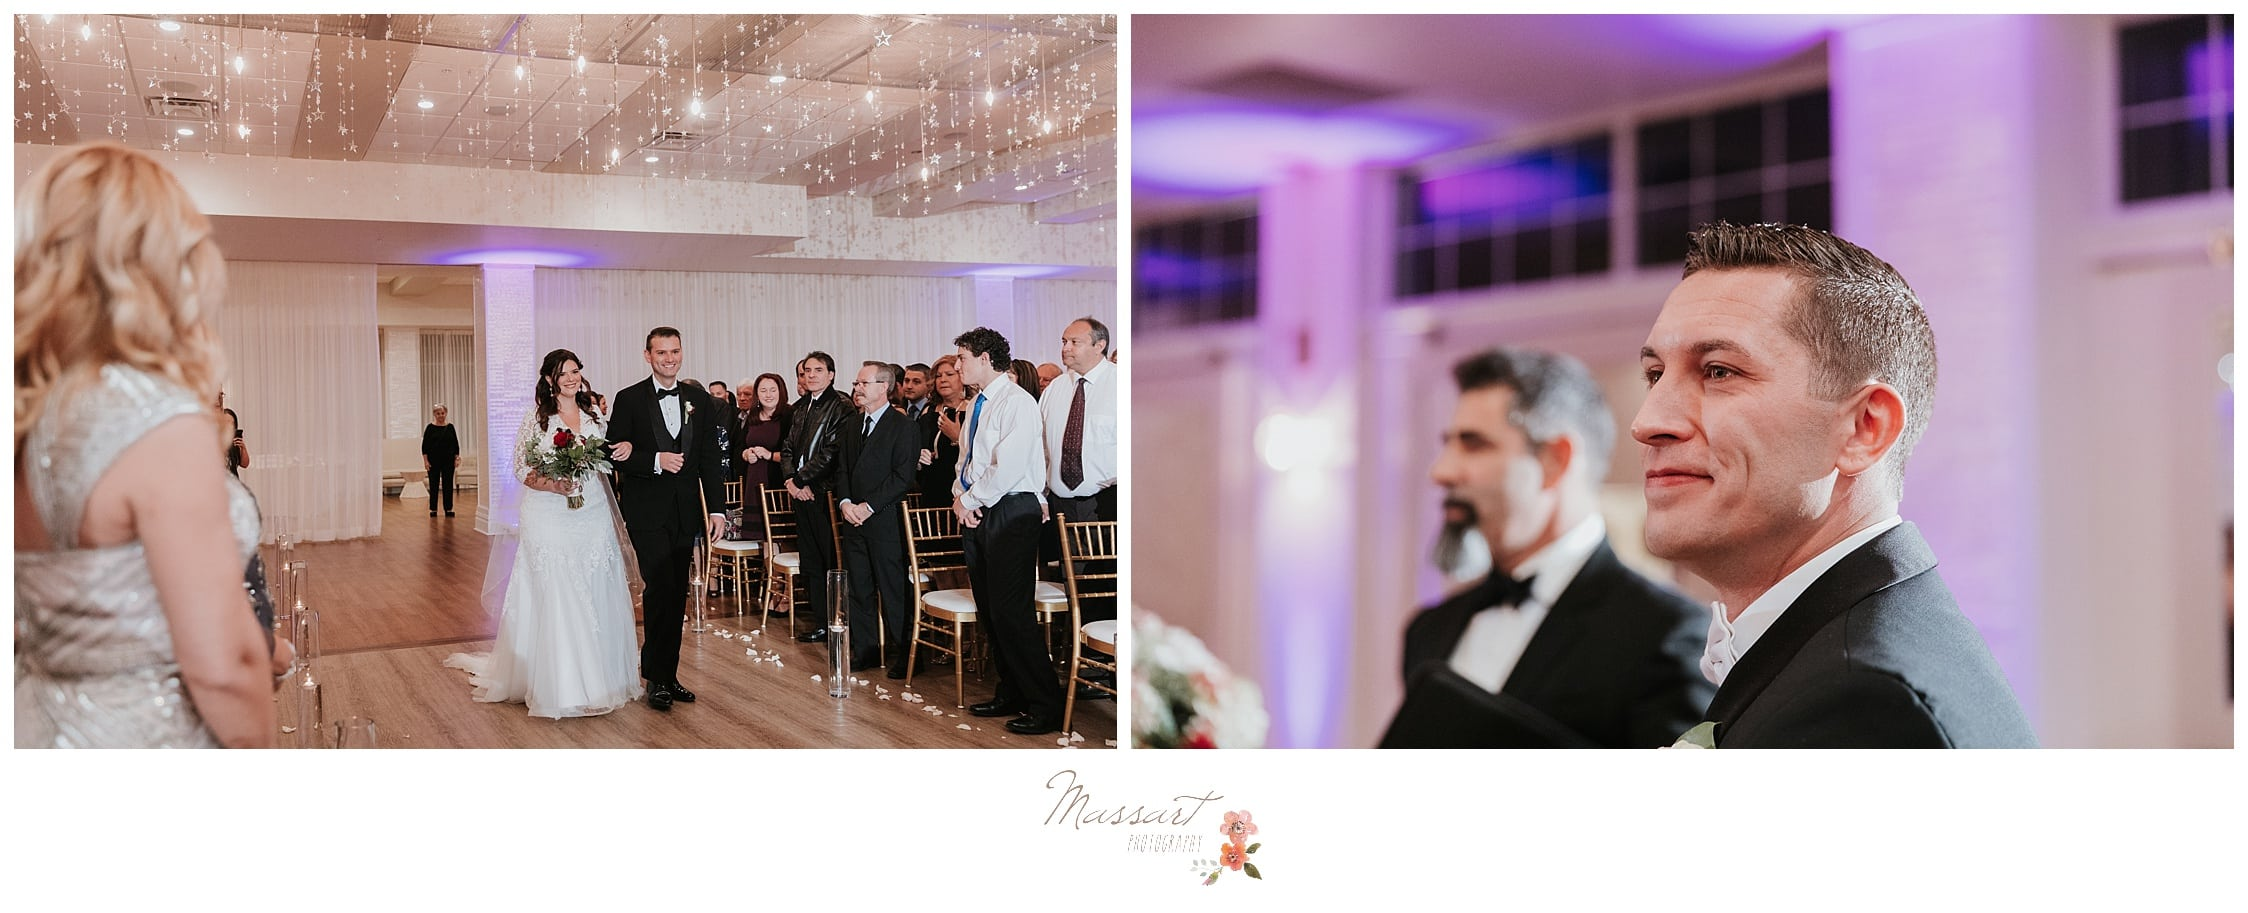 Groom sees bride walking down the ceremony aisle at the atlantic resort in middletown RI